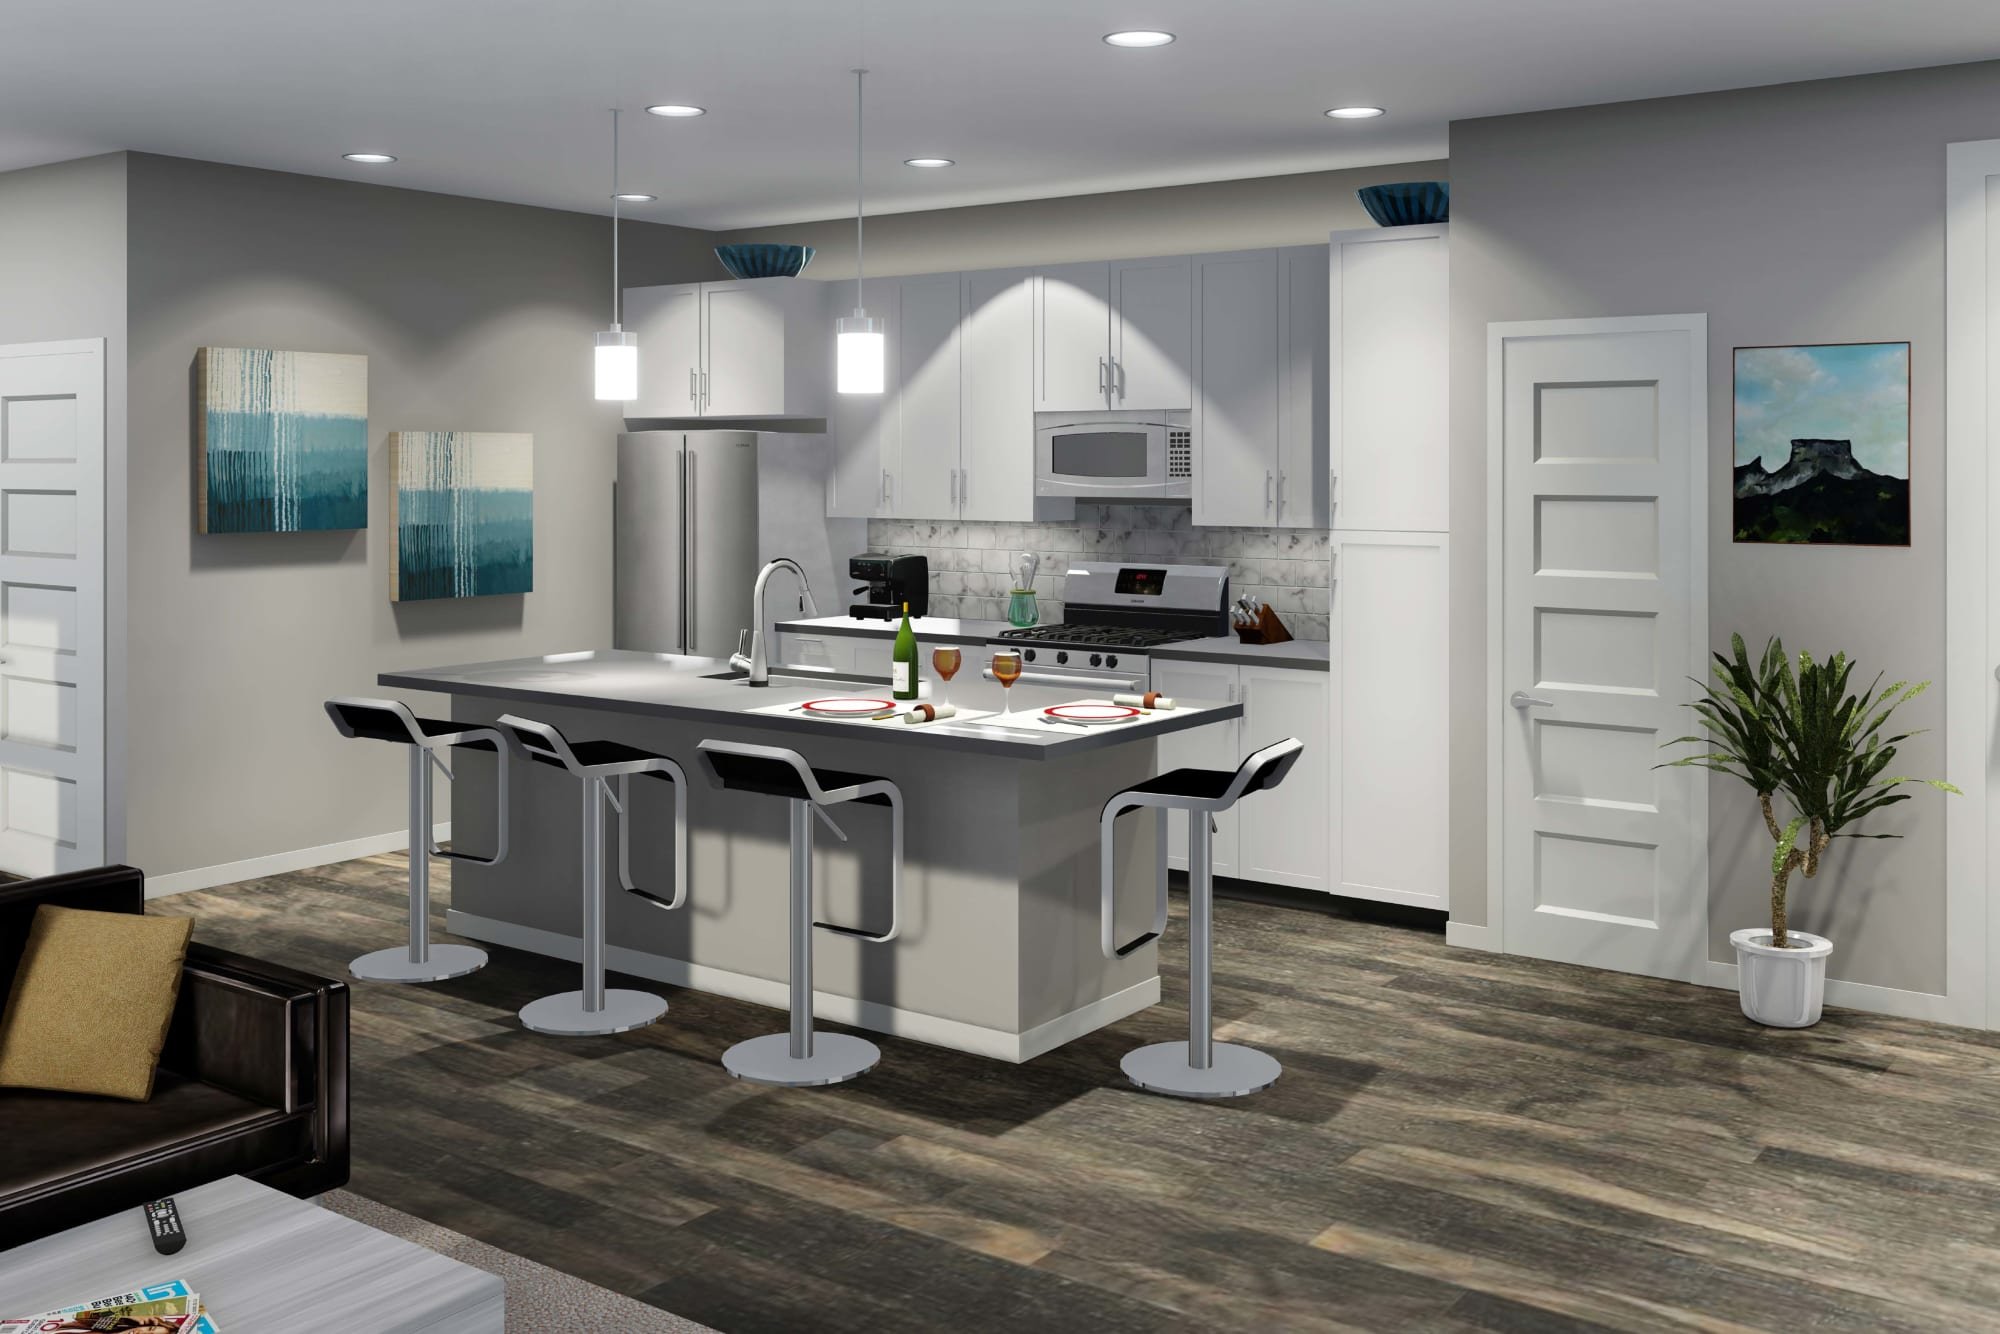 Brand New Build Kitchen Rendering, with White Cabinetry, Stainless Steel Appliances and Quartz Counters